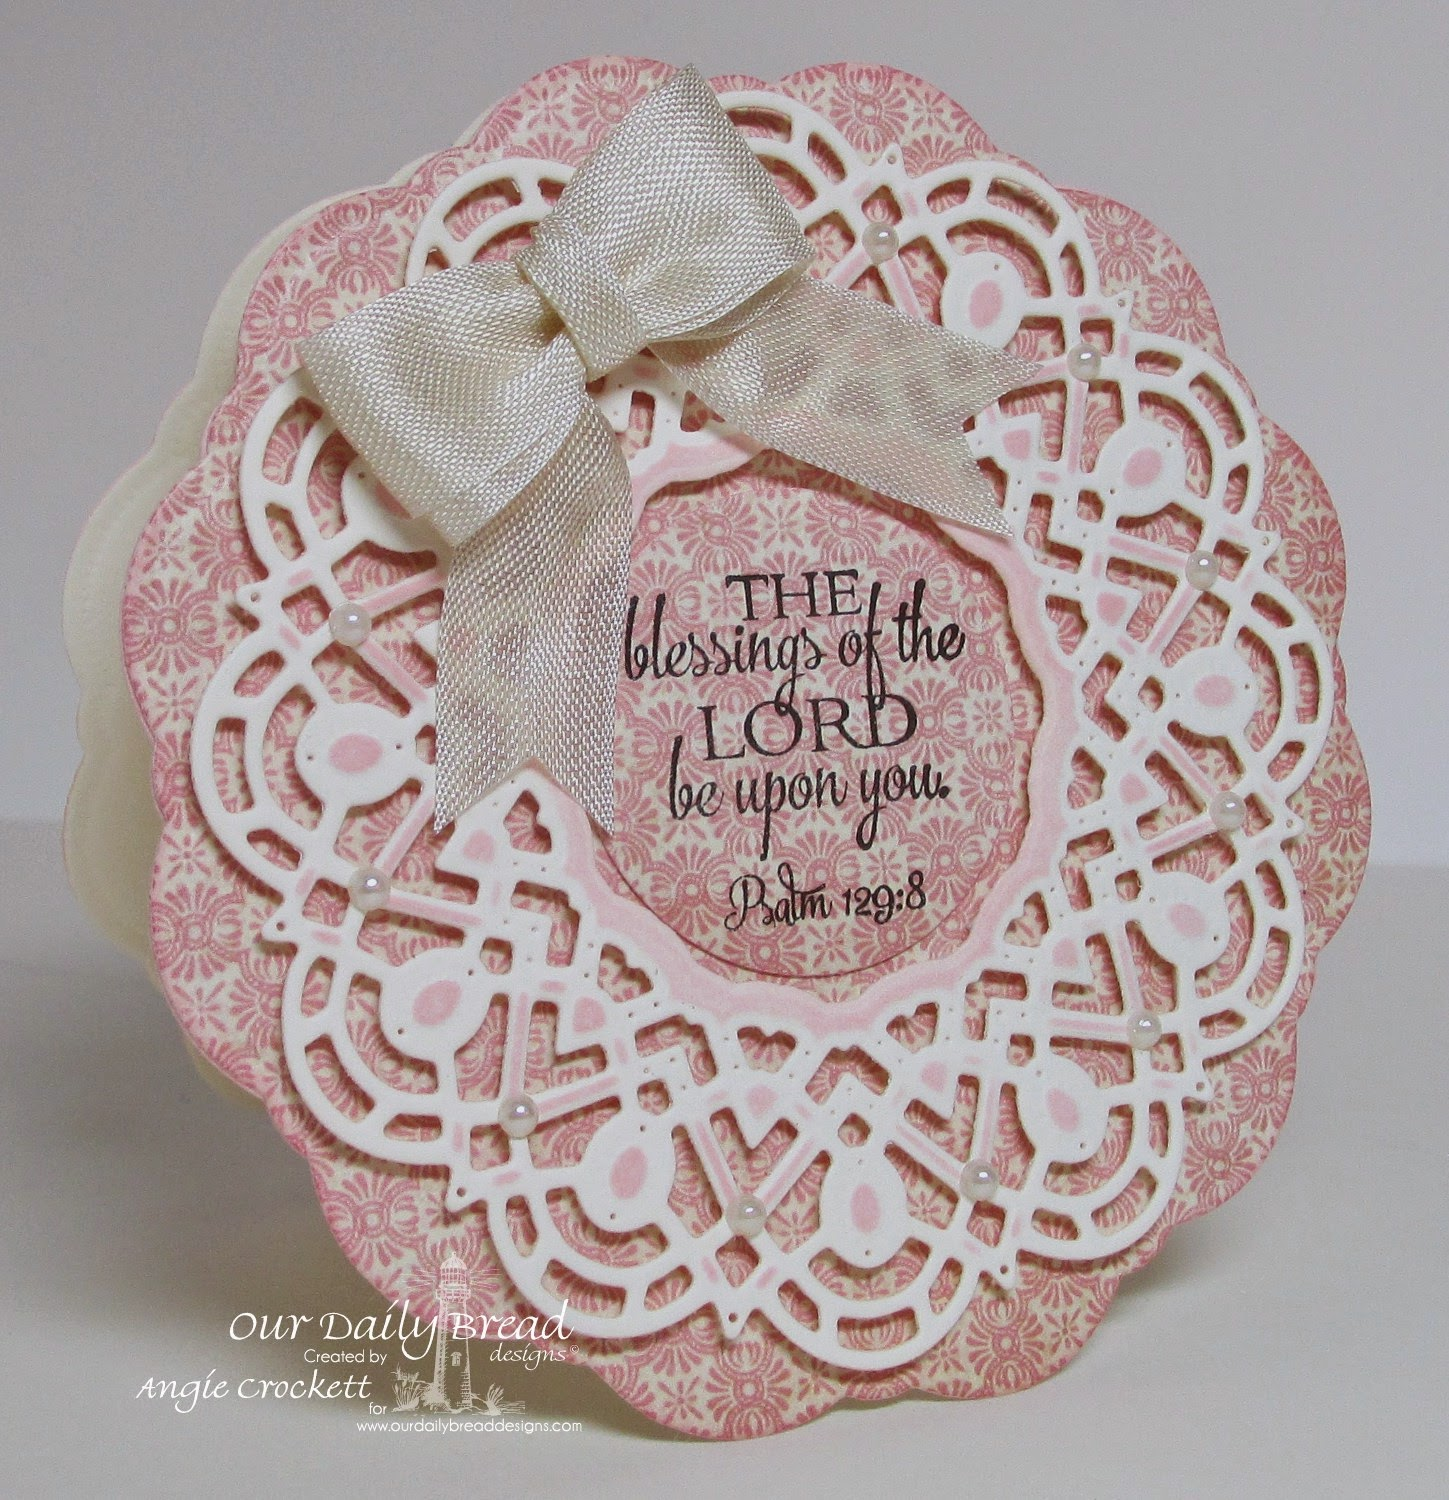 ODBD Custom Doily Dies, Doily Blessings, ODBD Blushing Rose Designer Paper Collection Card Designer Angie Crockett